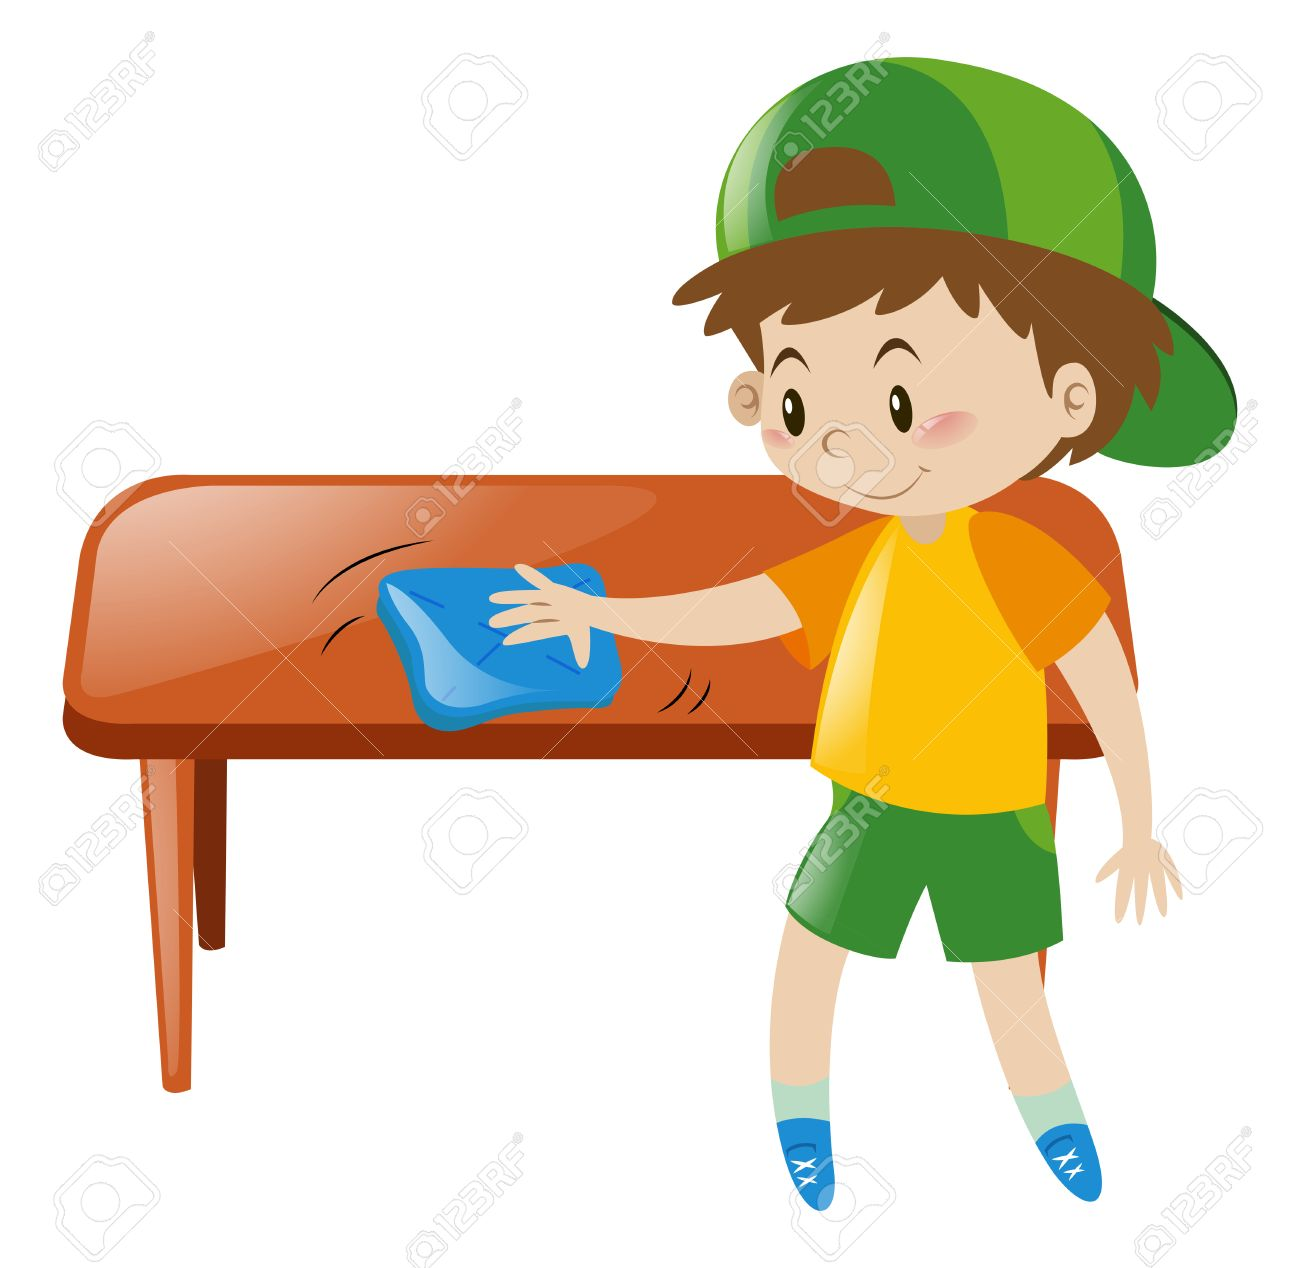 little boy cleaning table with cloth illustration royalty free